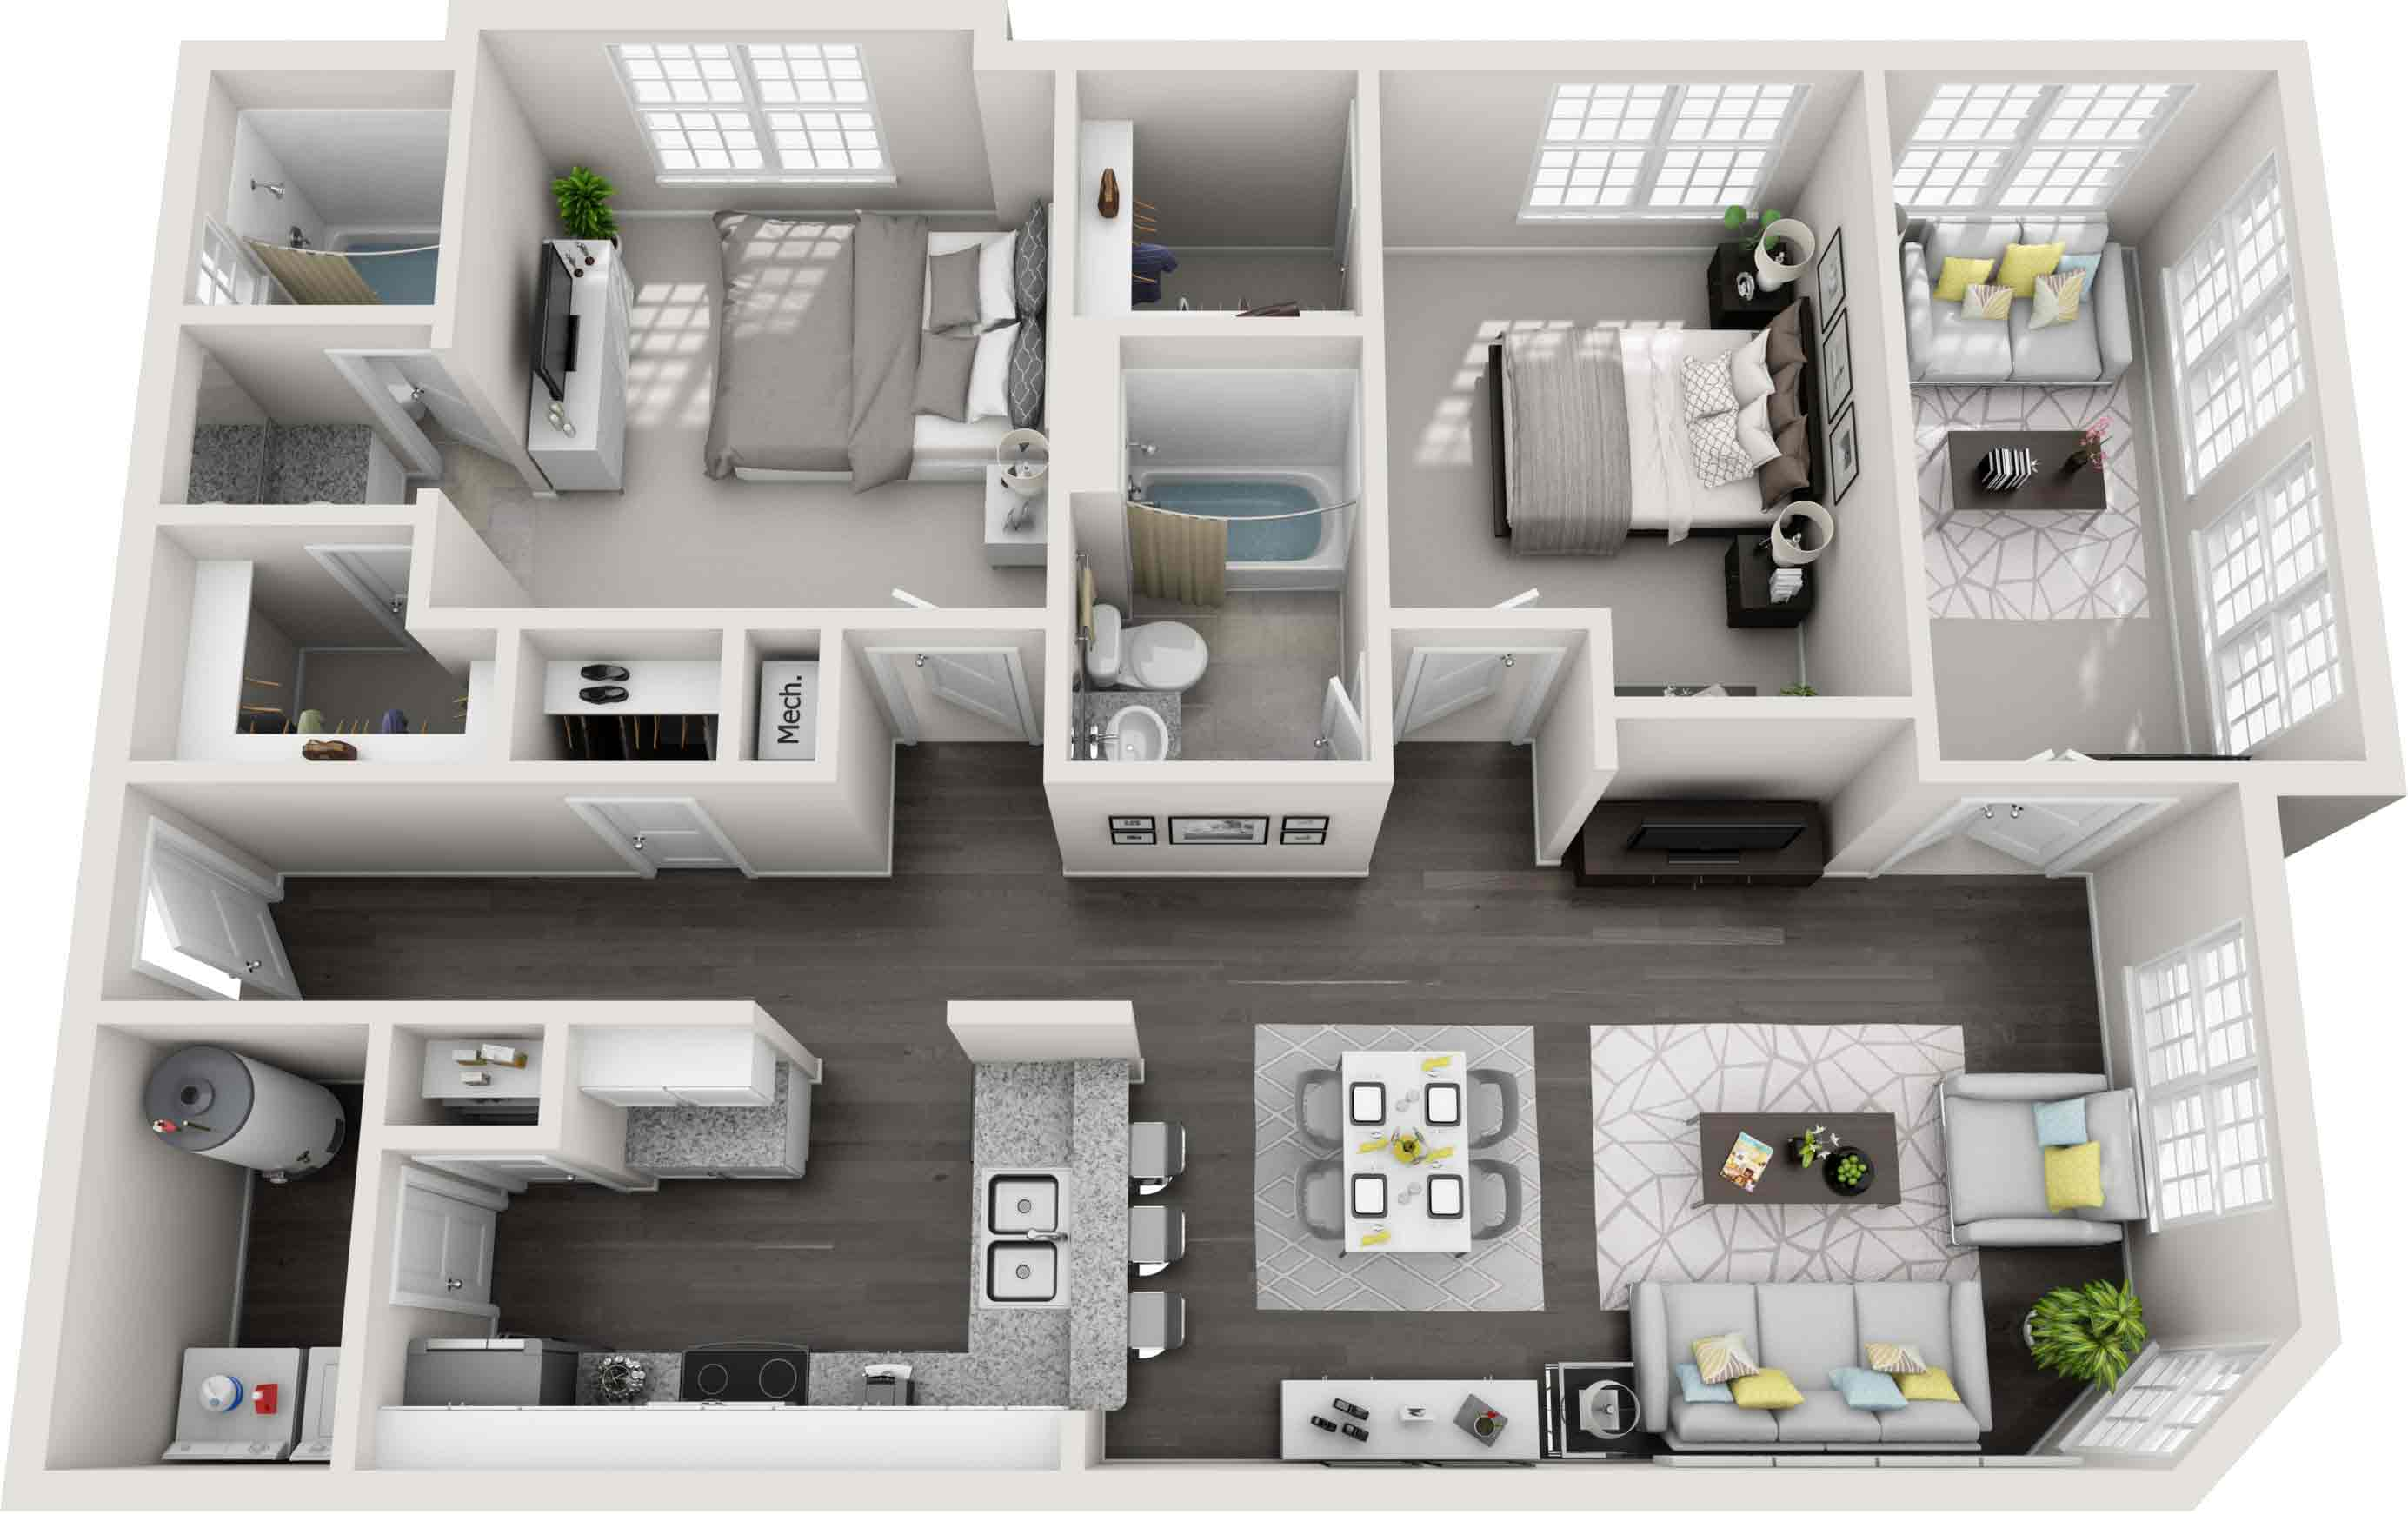 estates at new albany two bedroom apartment 1217 square feet